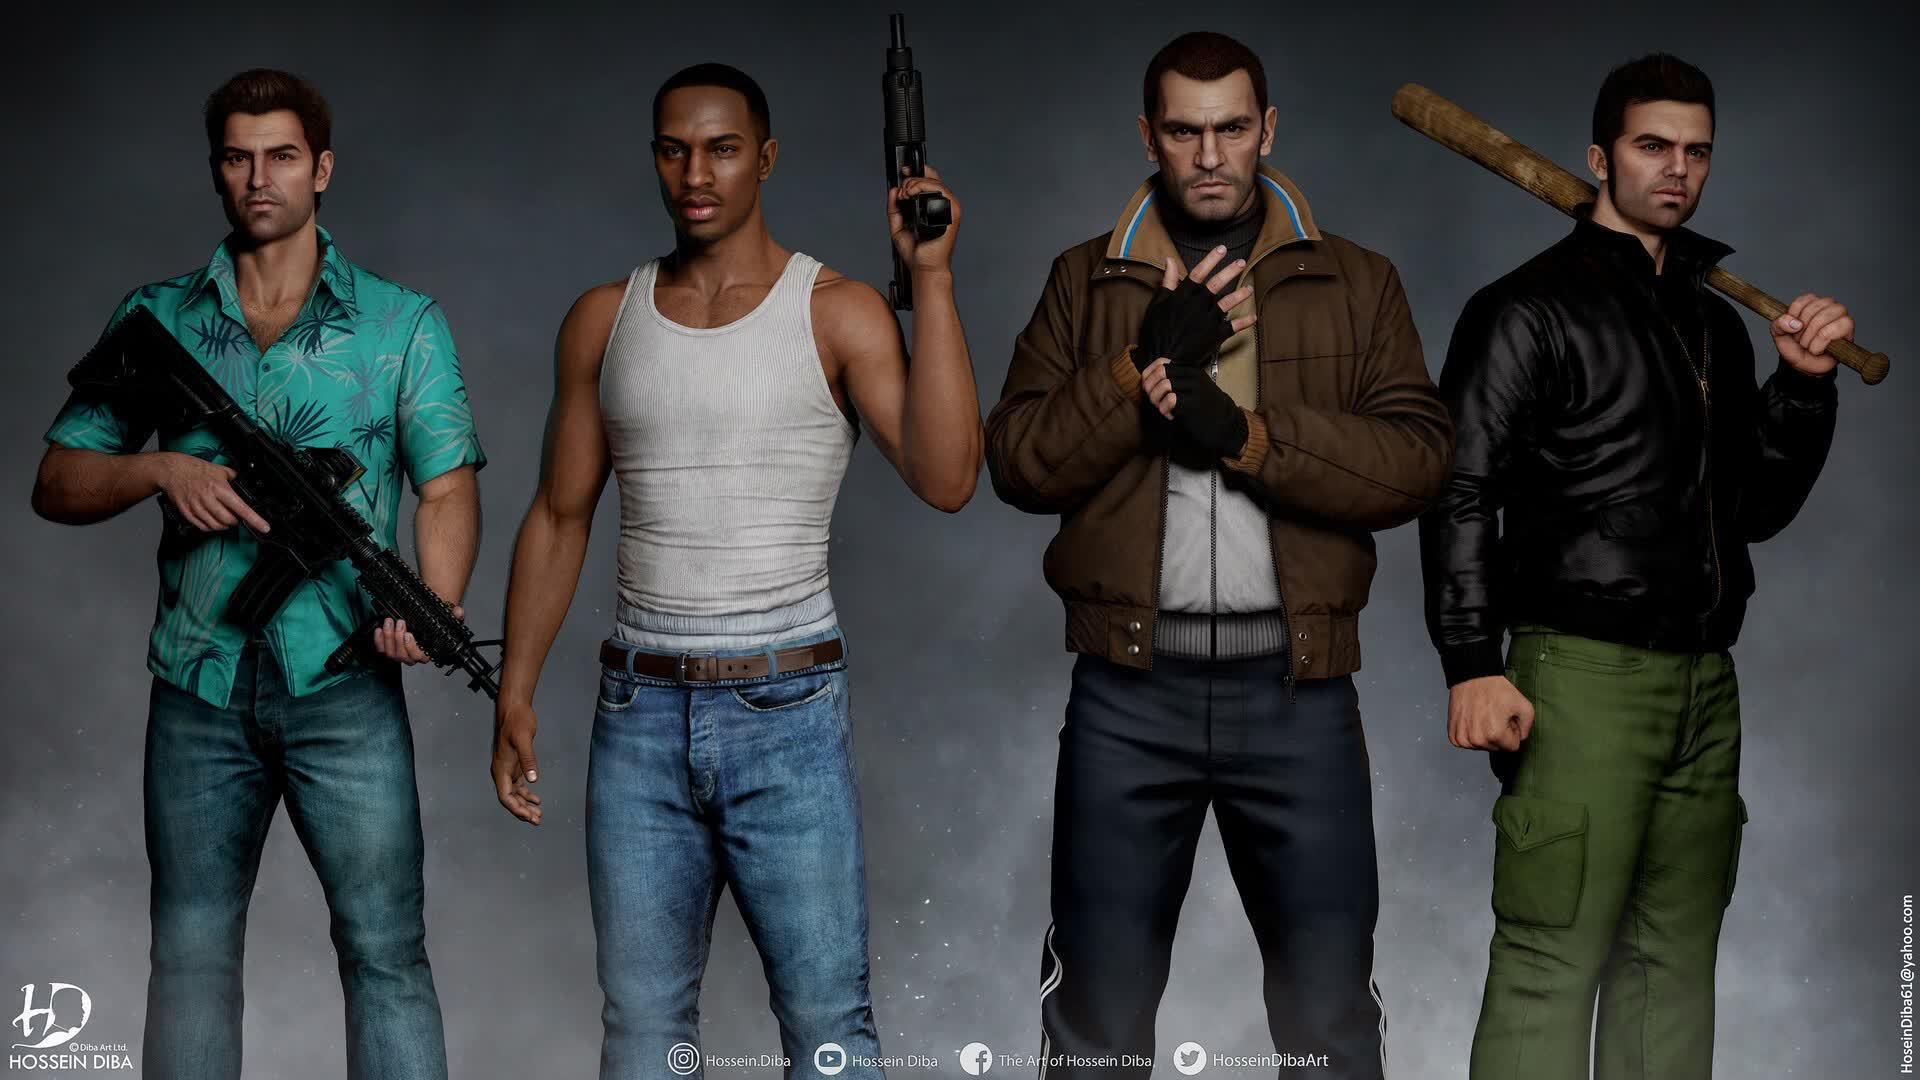 Artist turns old GTA characters into lifelike 3D models